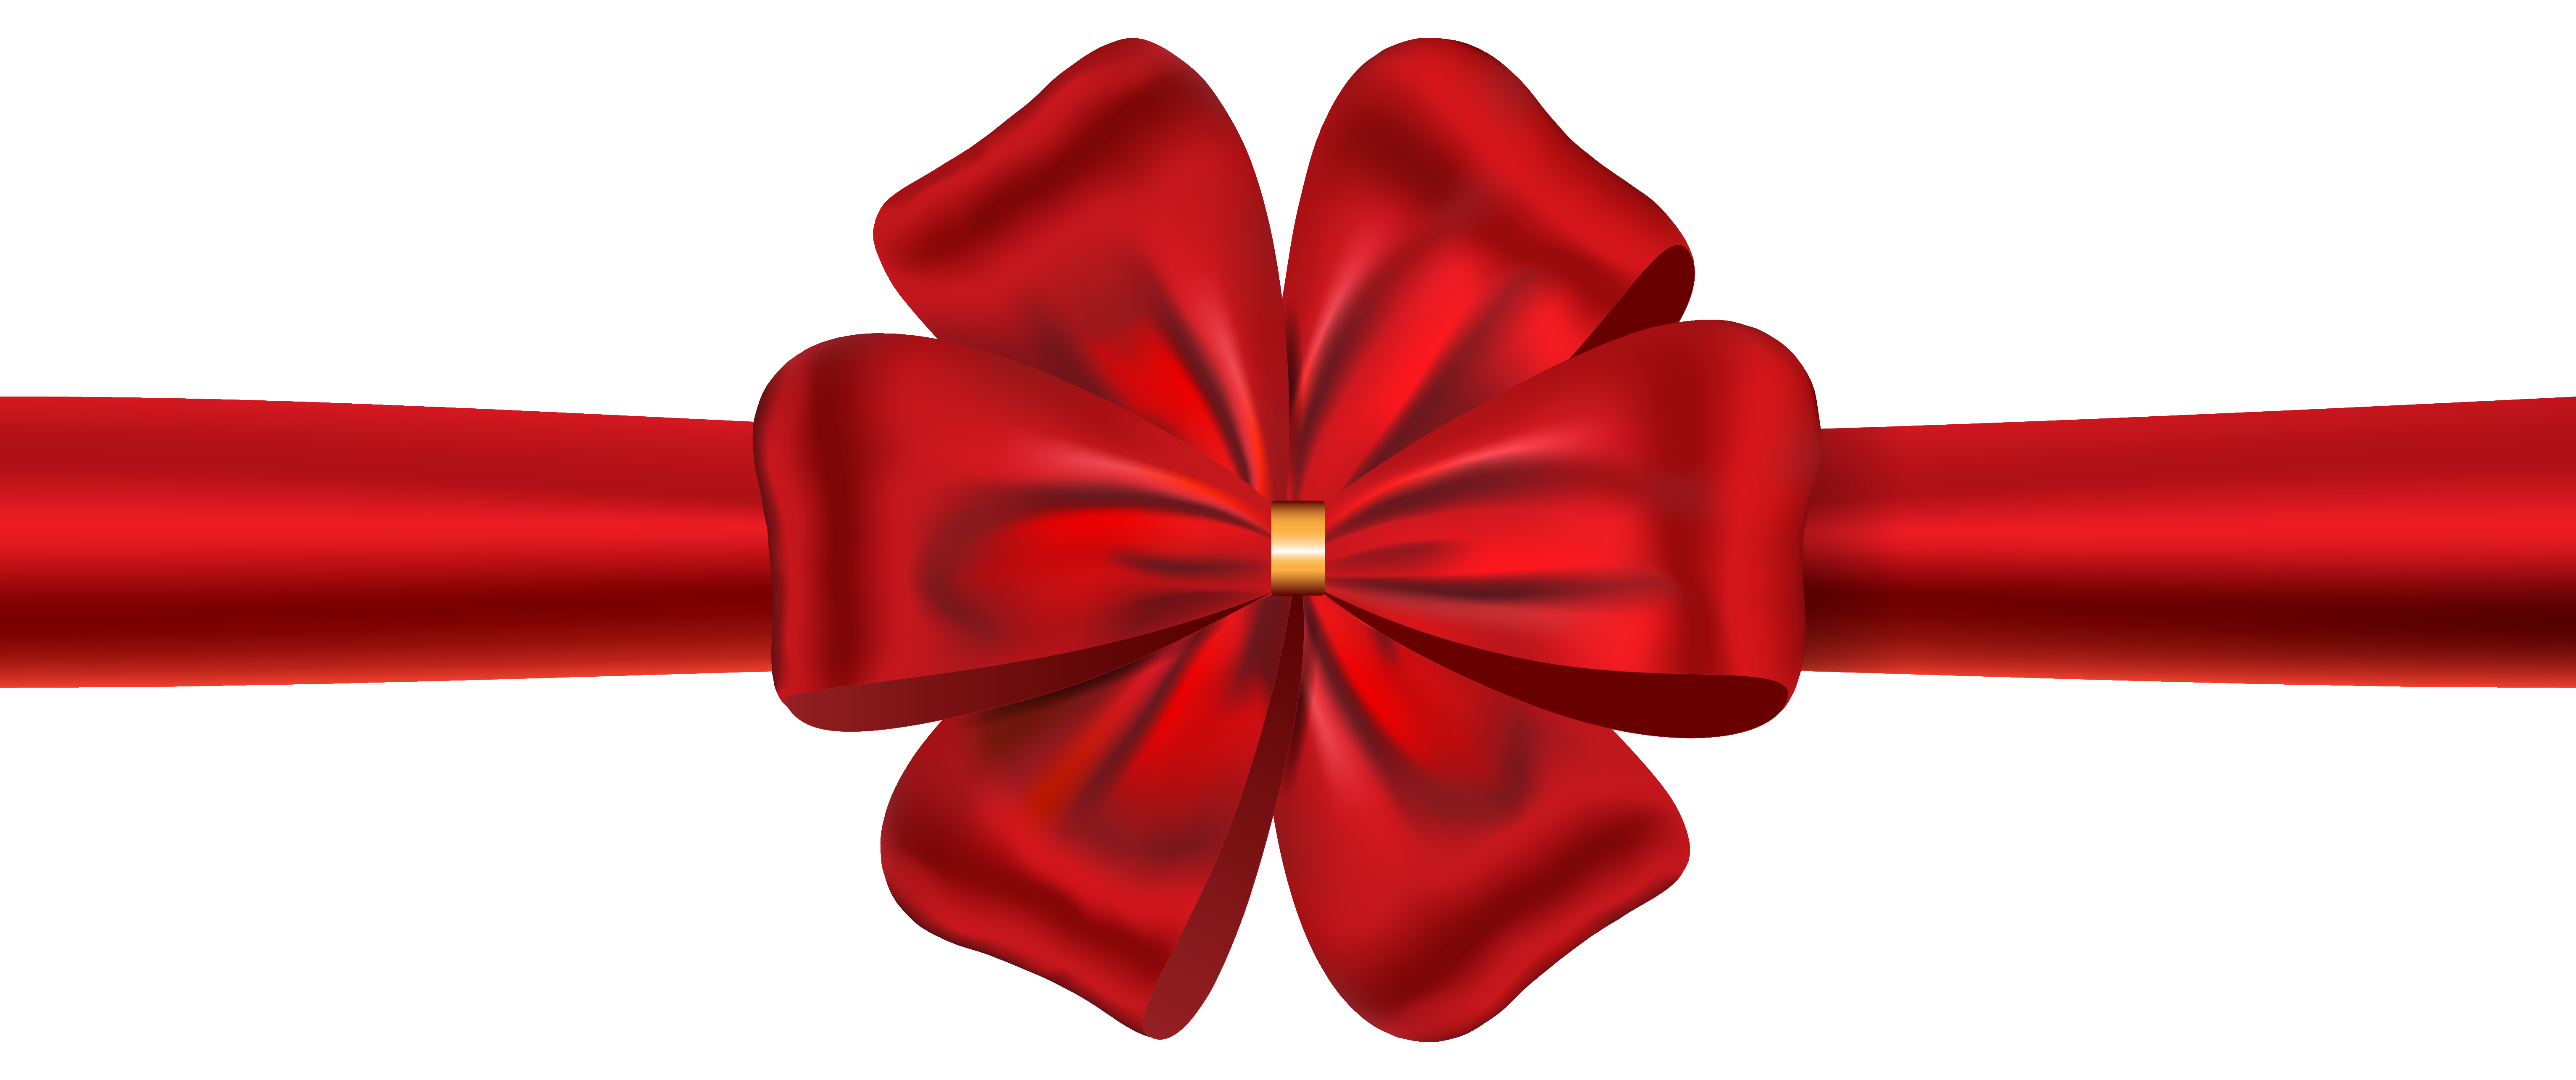 With bow image gallery. Red ribbon banner png vector black and white download